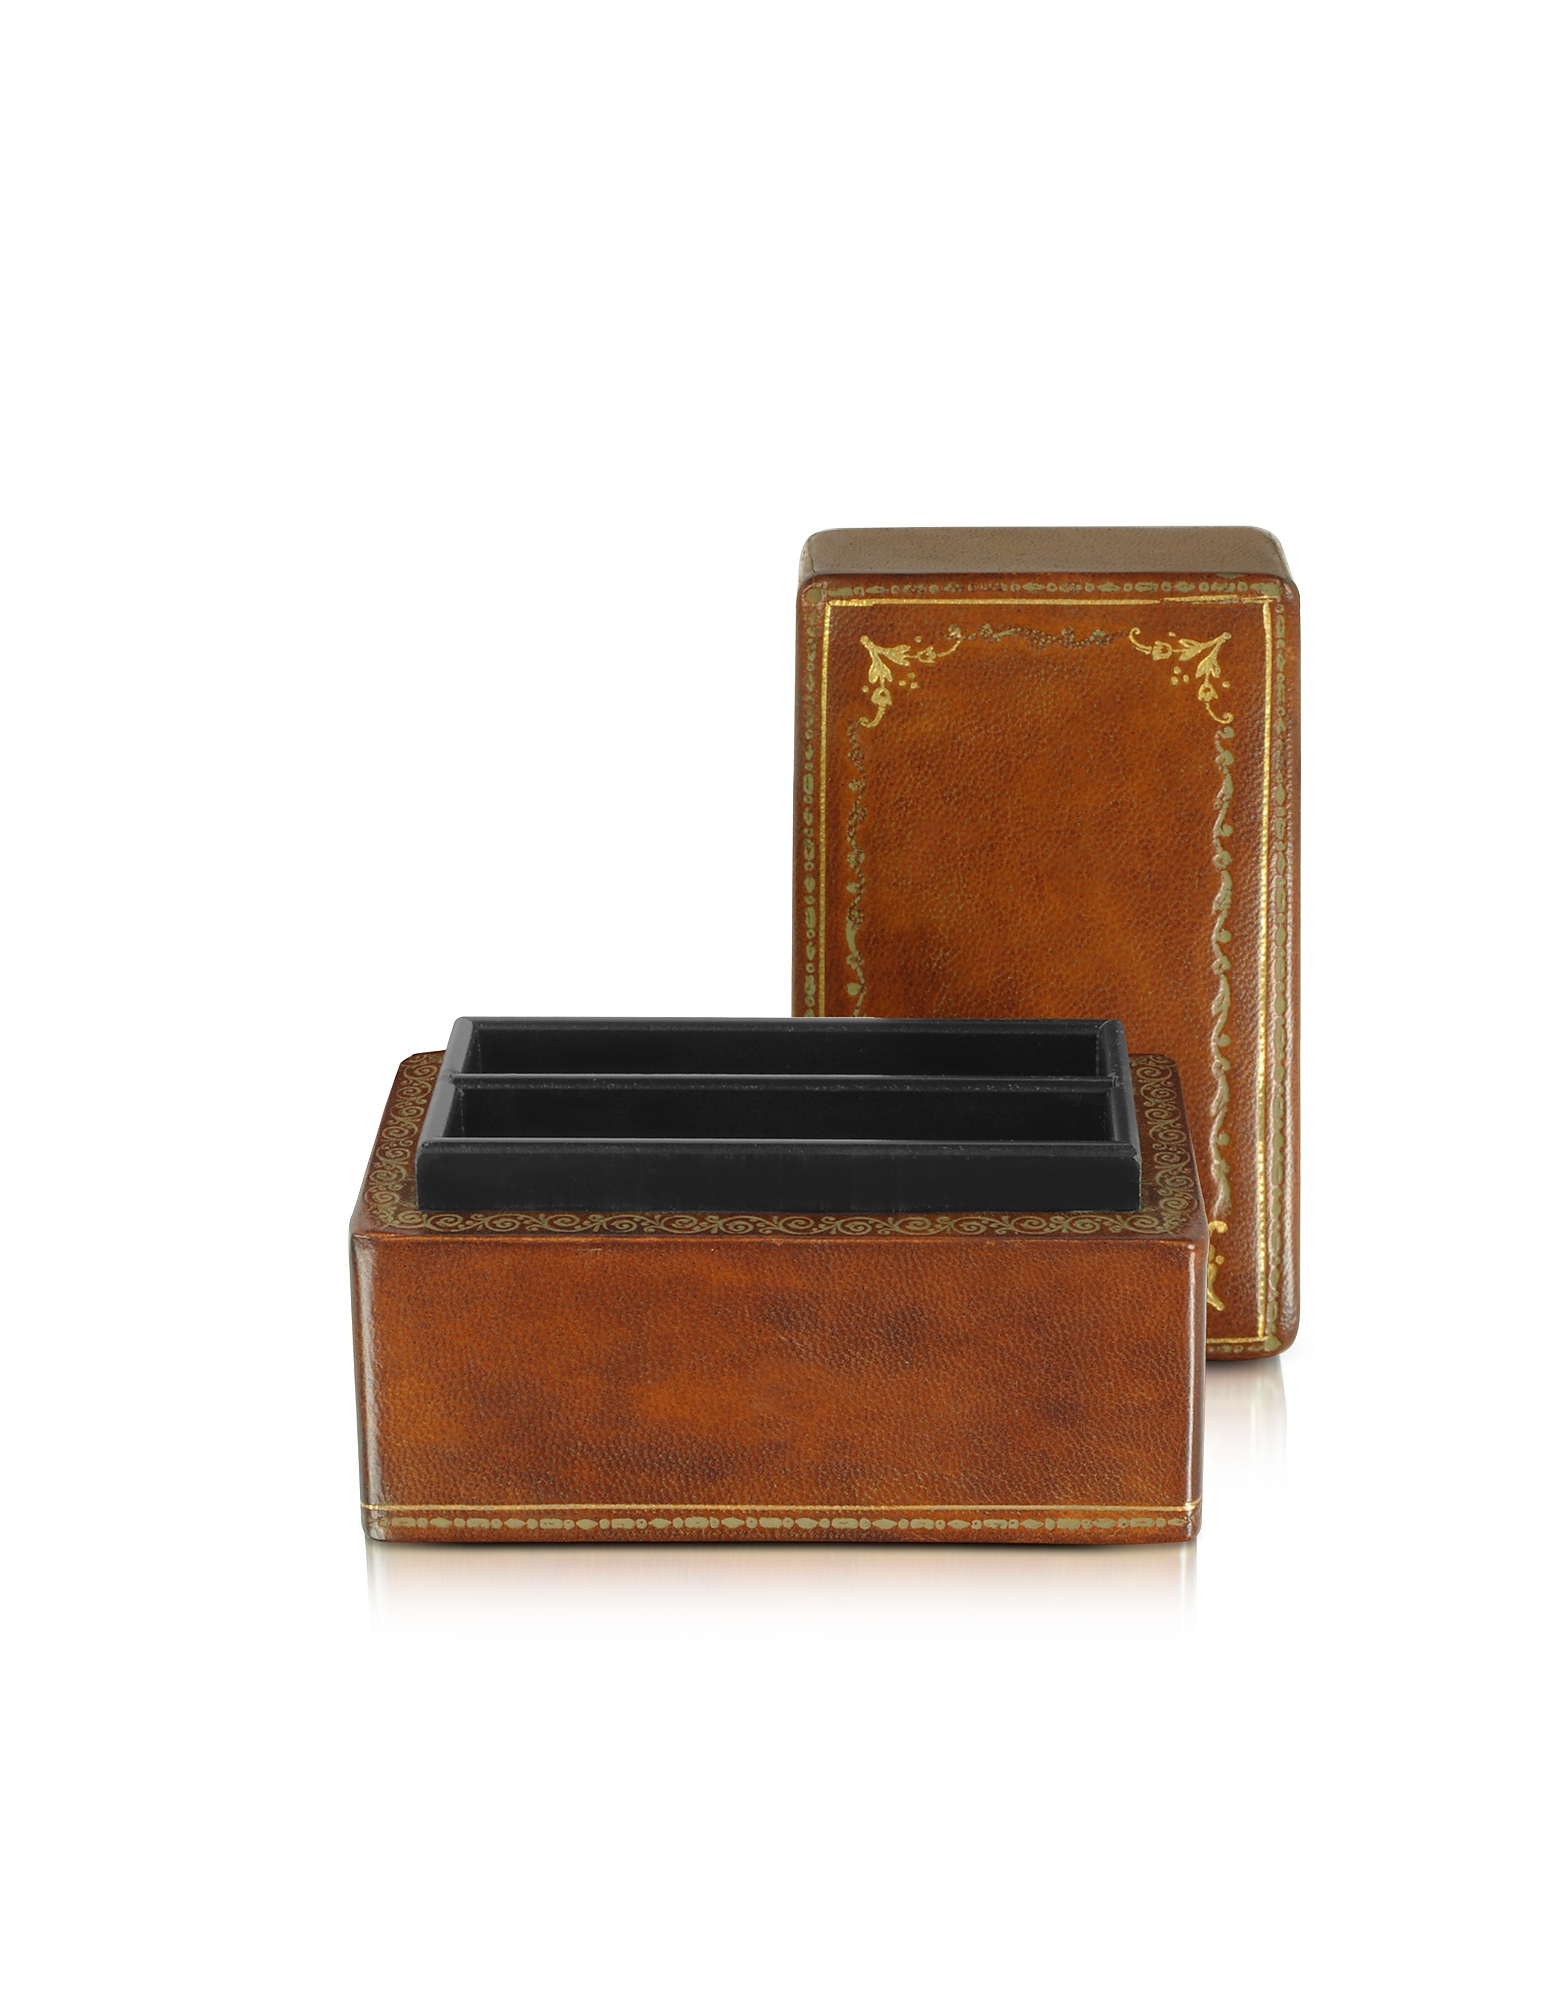 Forzieri Small Leather Goods, Genuine Leather Card Box